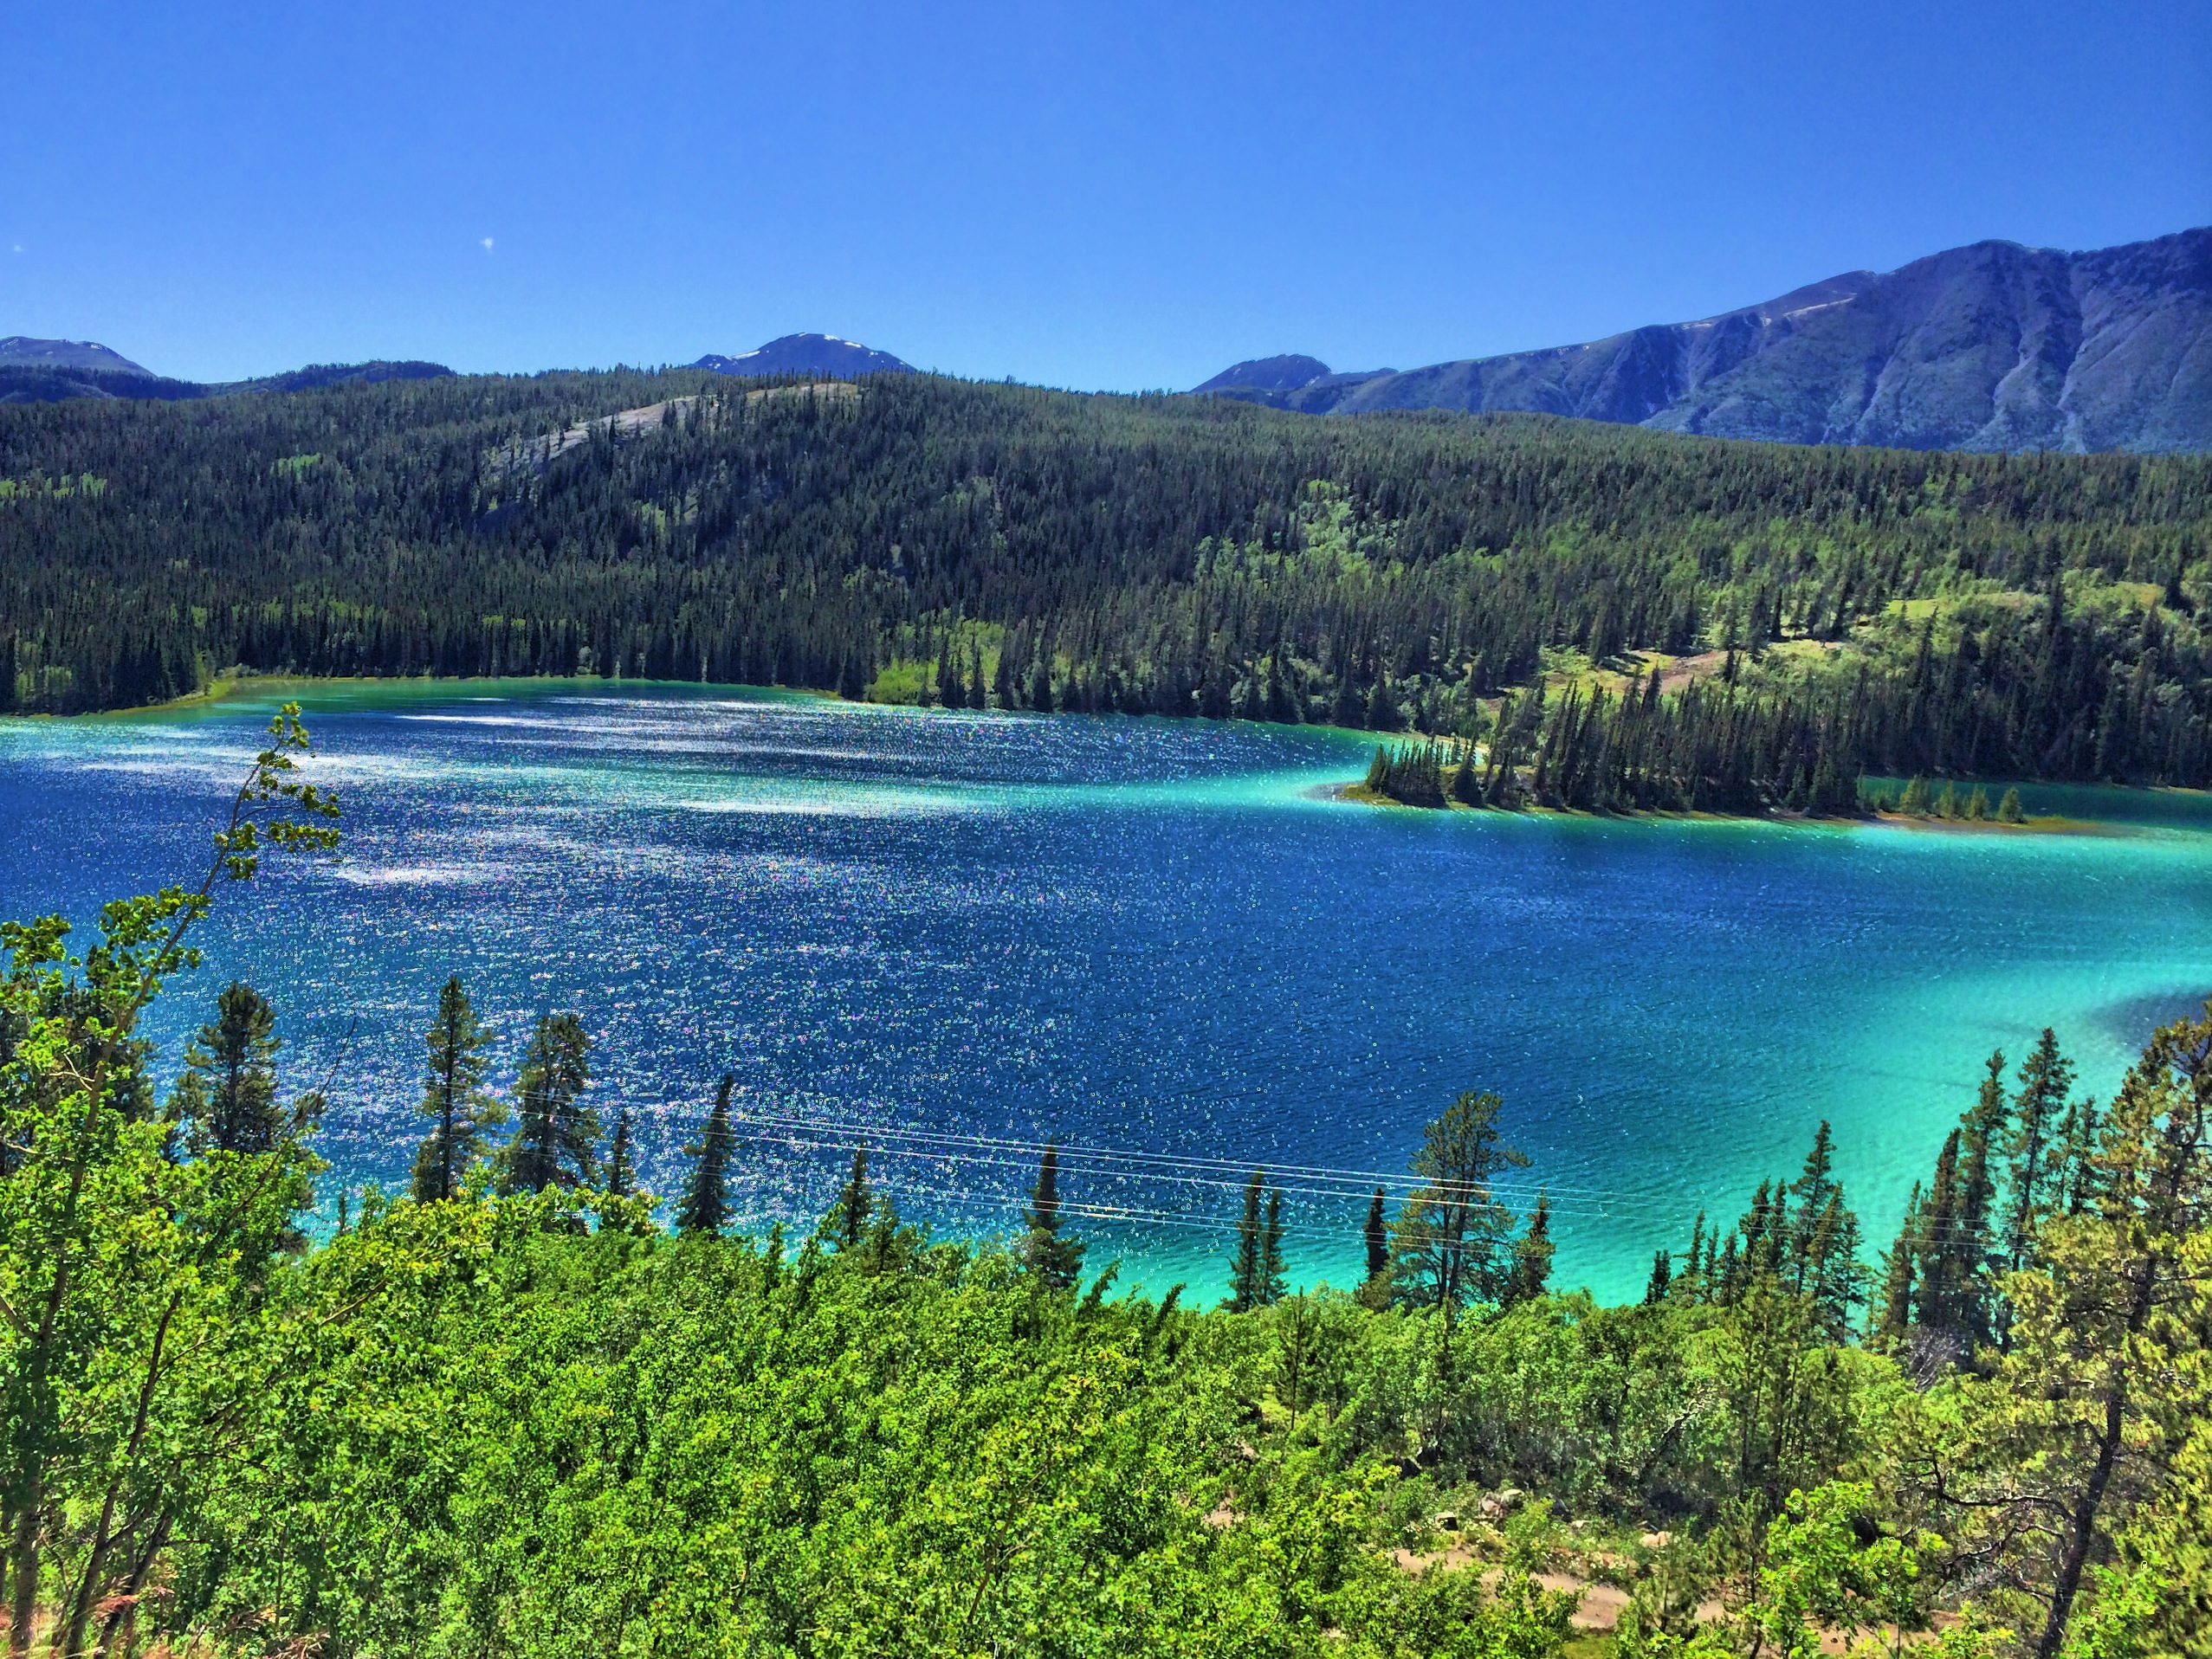 Emerald Lake, Carcross, Yukon. Photo: Gurdeep Pandher